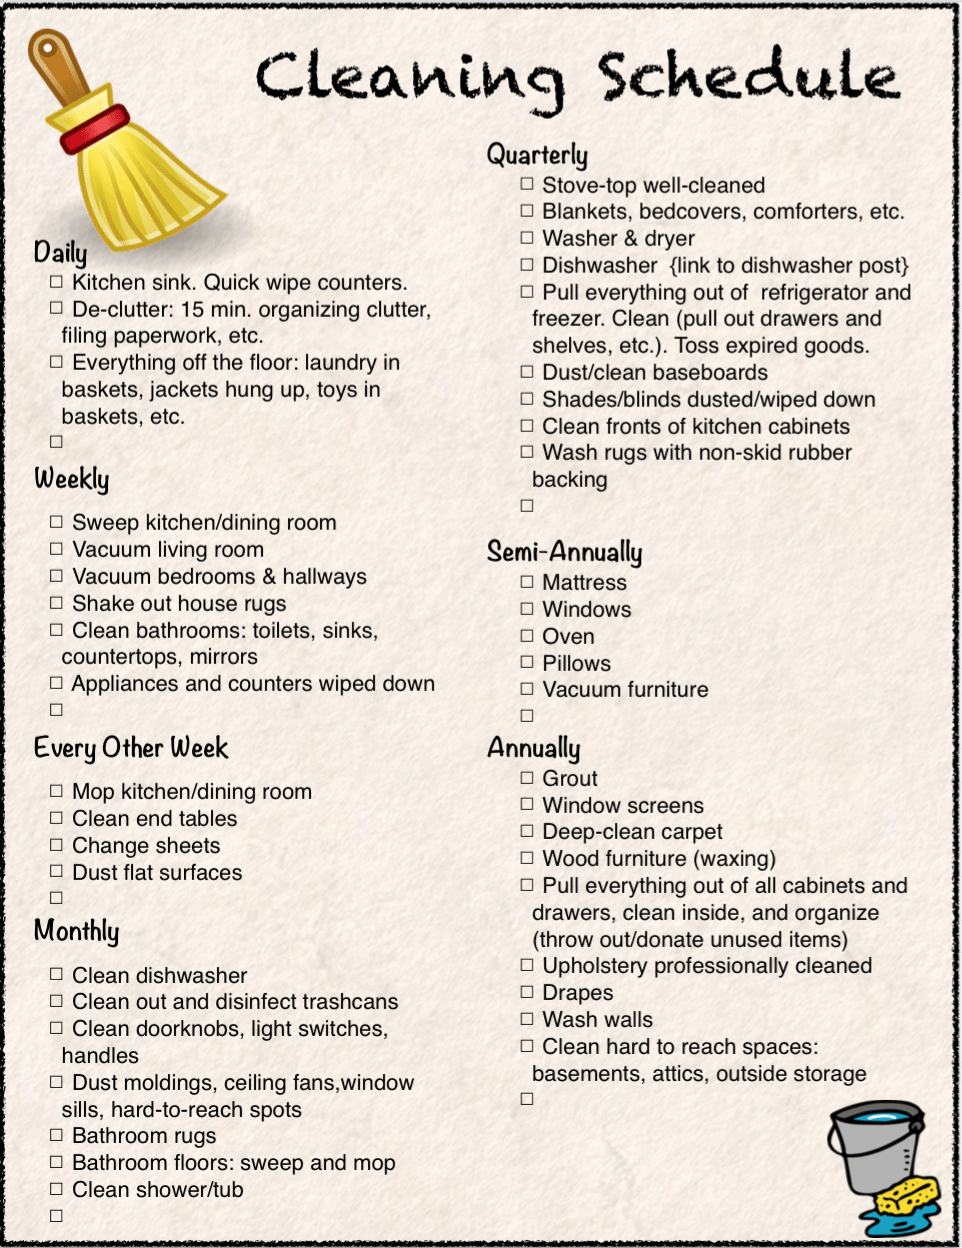 2 Free Printables: Cleaning Checklist and Schedule. Everything from weekly to annual tasks. Stay organized.